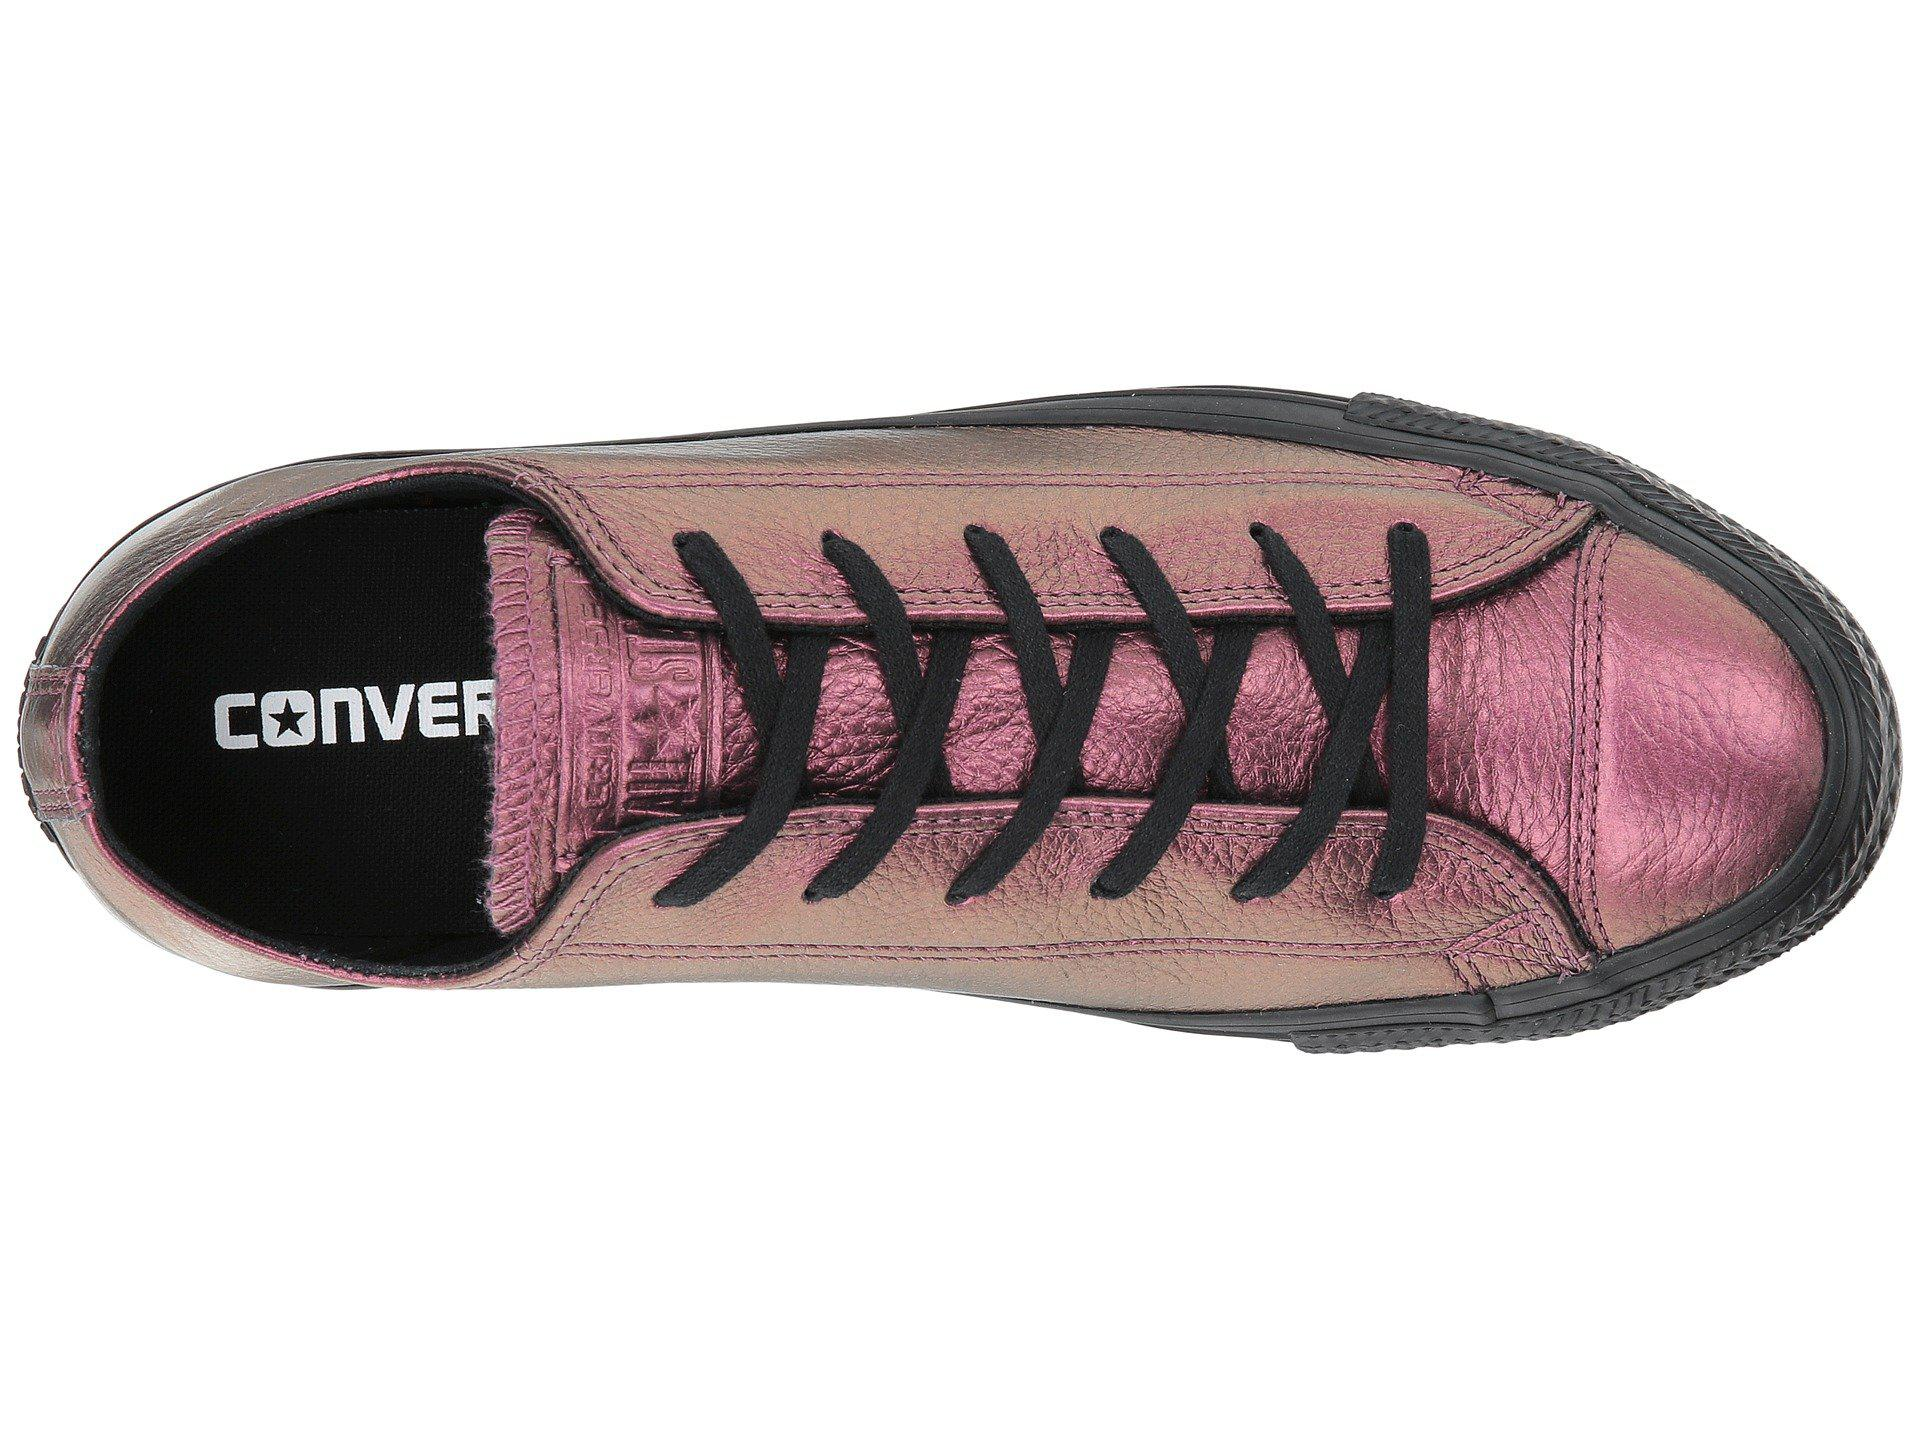 4c0e970170c4 Lyst - Converse Chuck Taylor® All Star® Iridescent Leather Ox in Black